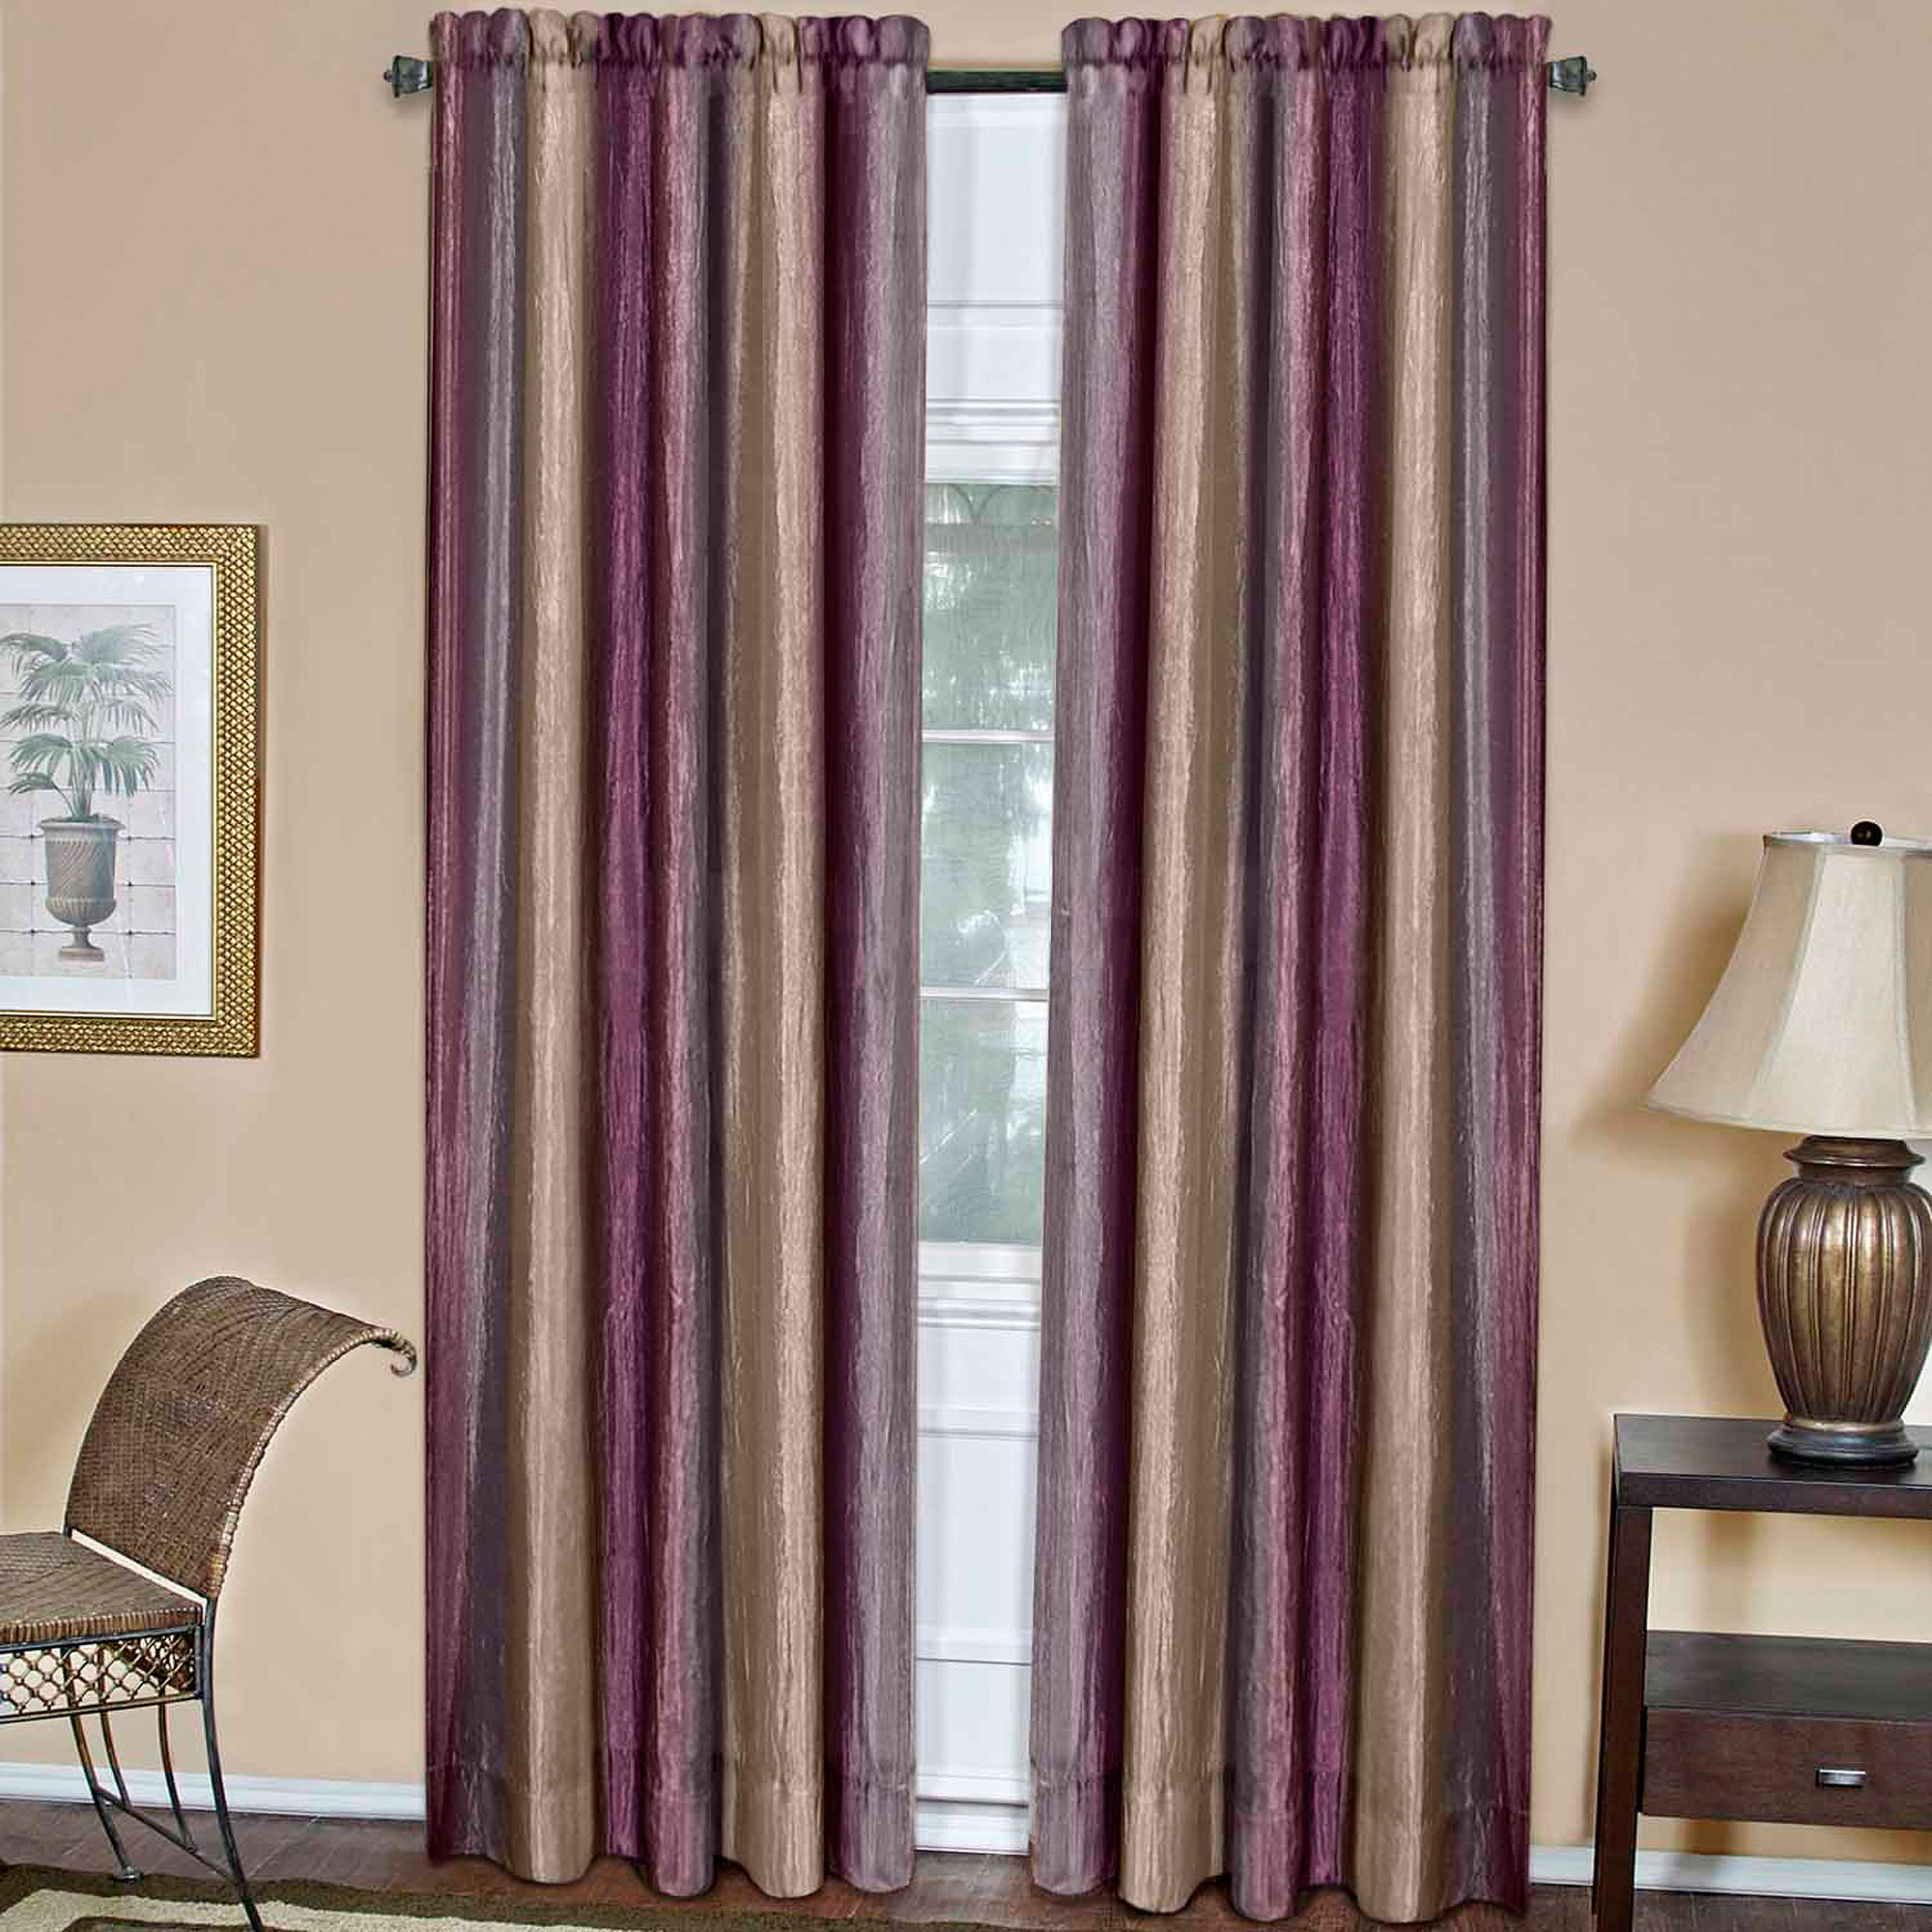 pair shades ombre expand p x curtains tailored panels click to curtain